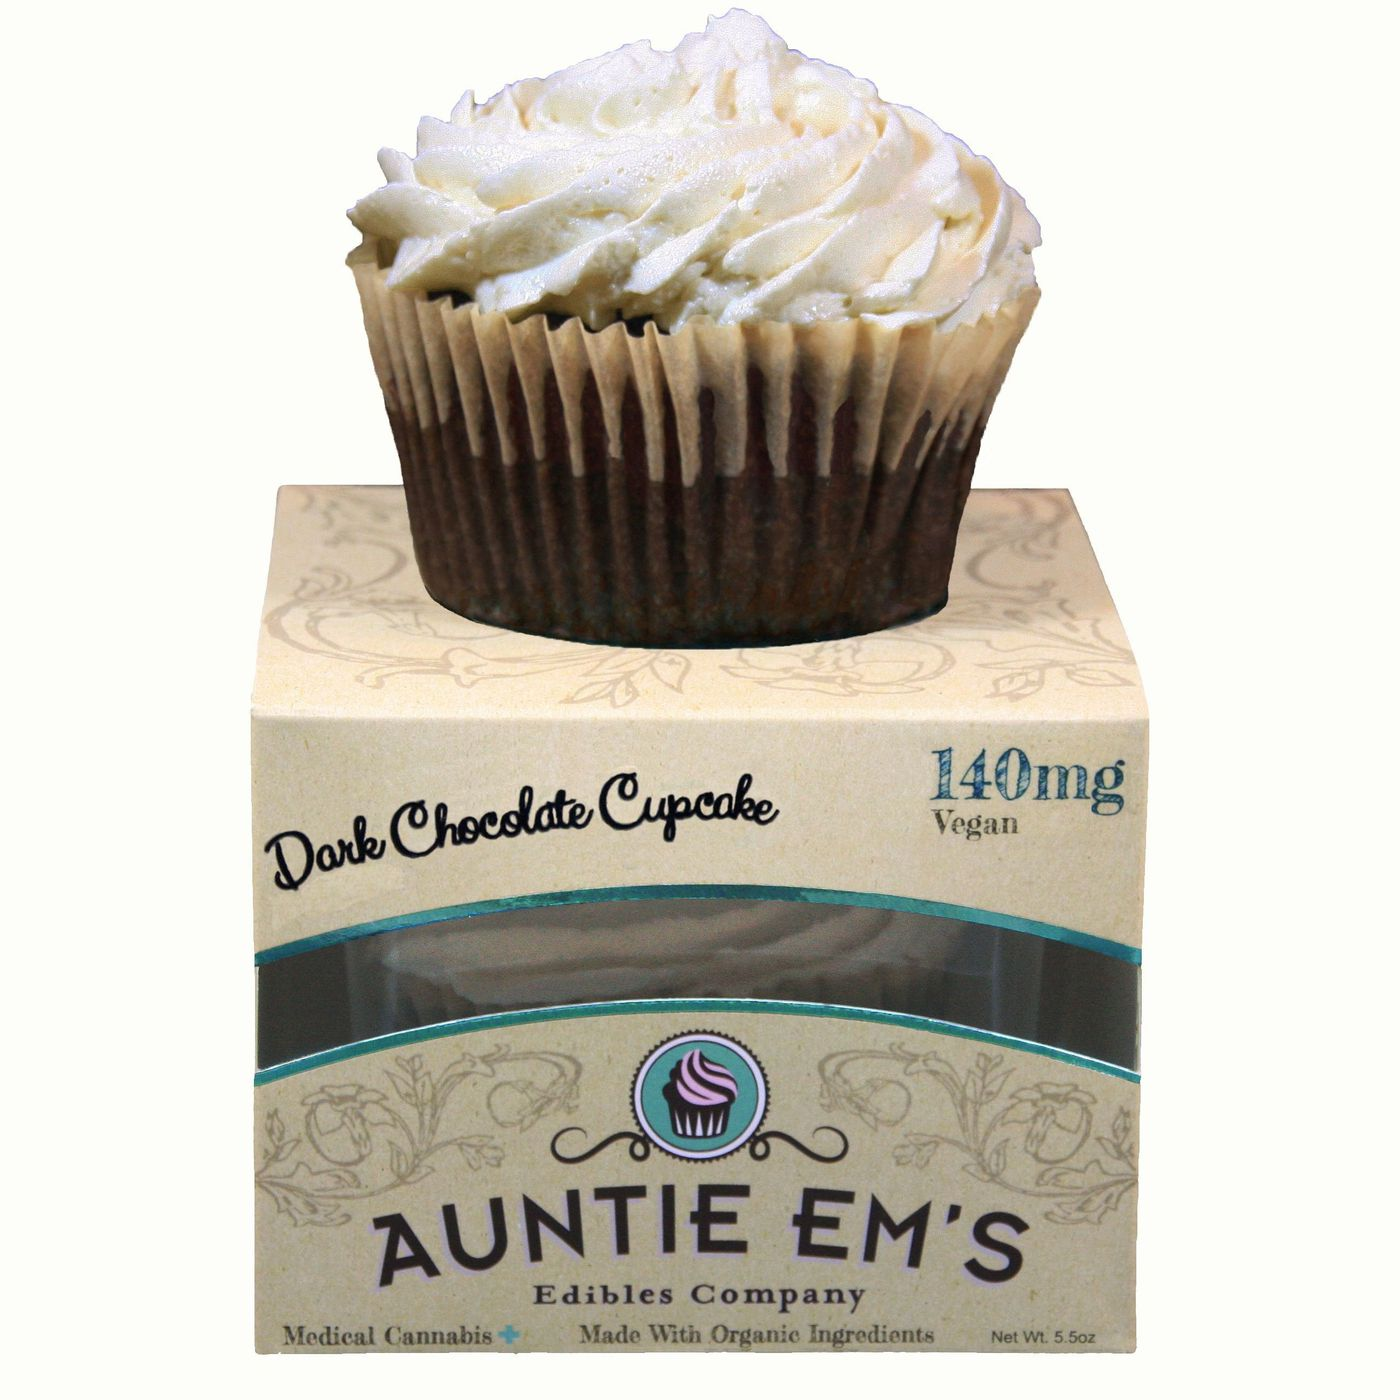 If you're in a cannabis-legal state, these Auntie Em's vegan & organic dark chocolate cupcake will leave you both mellow and satisfied! $20 @leafly.com